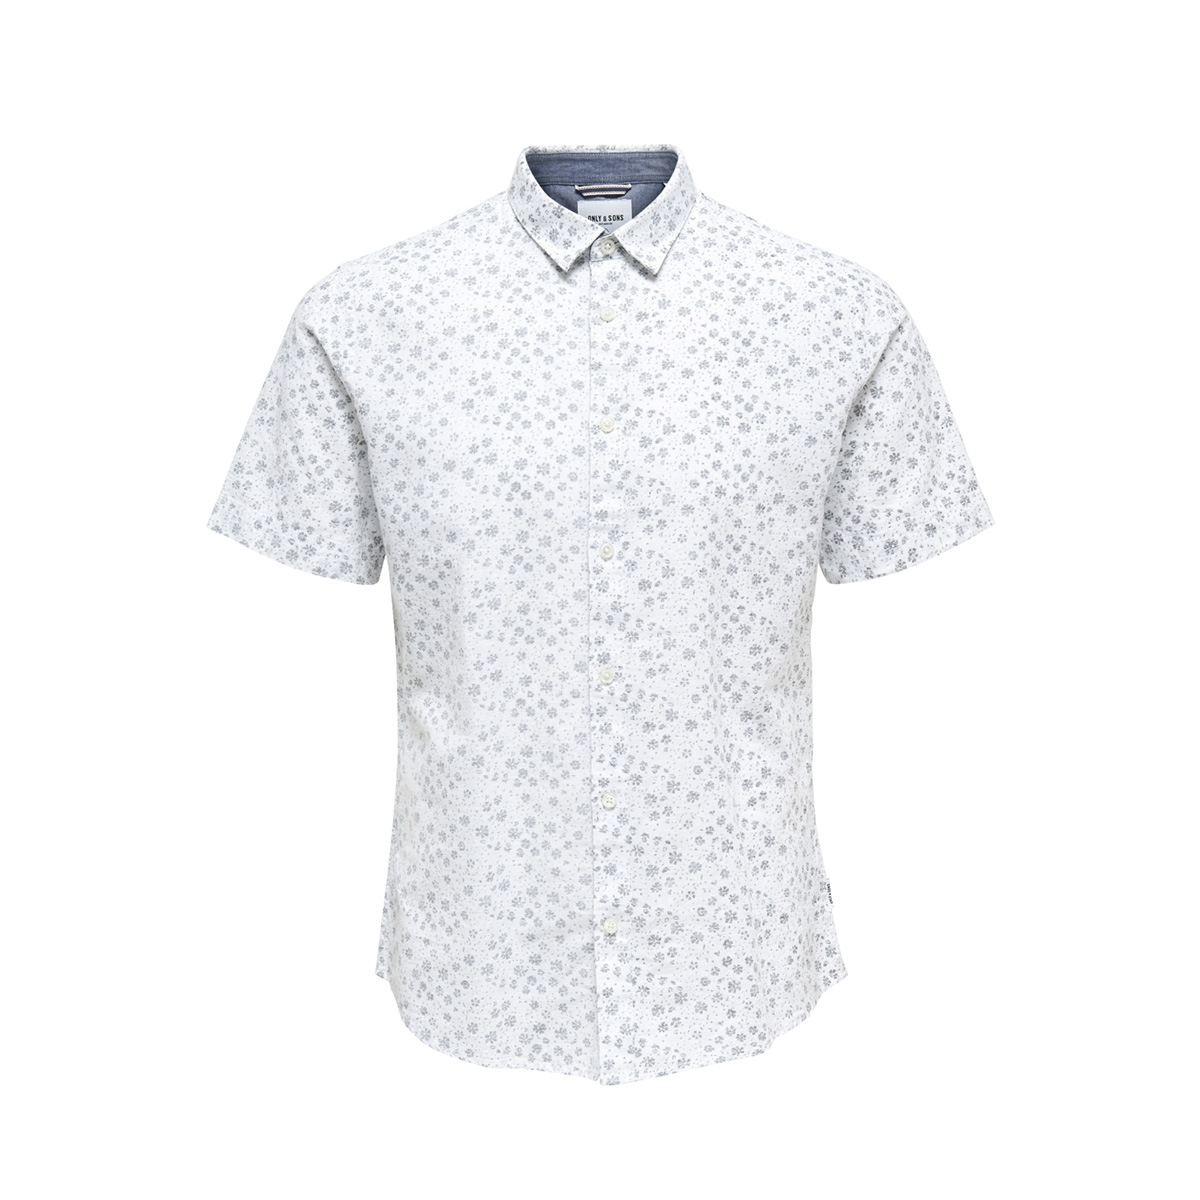 onscaiden ss aop linen shirt re 22012661 only & sons overhemd white